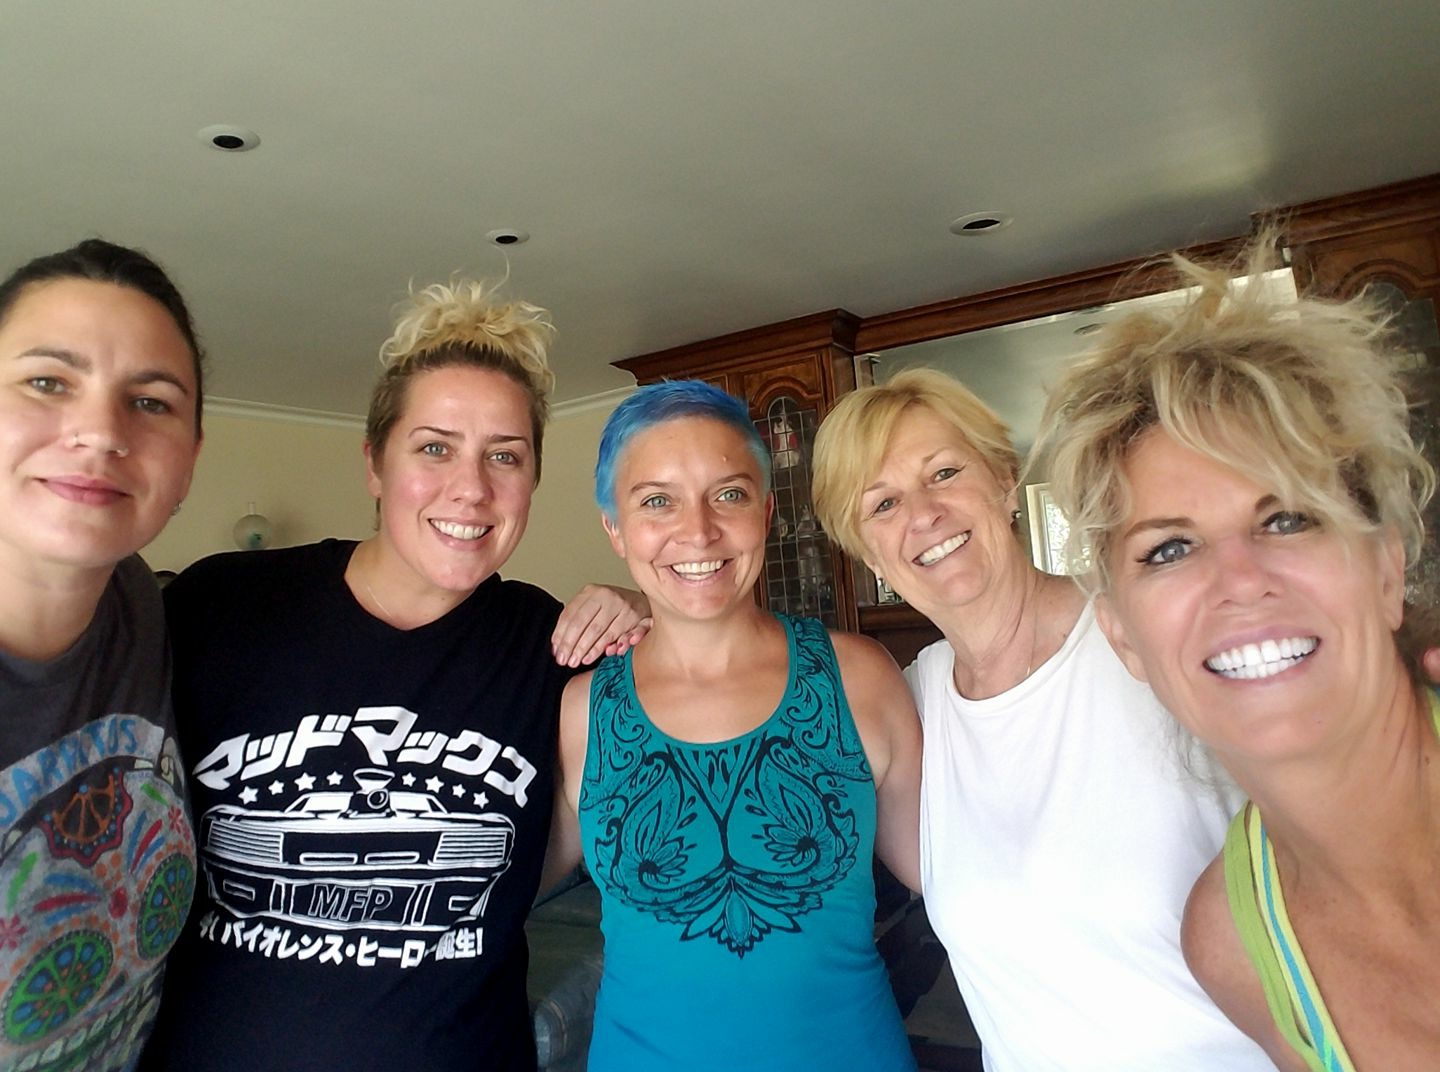 Private Yoga with (from L to R) Hannah, Julz, myself, Karen, and Leanne. What a beautiful way to spend a morning.